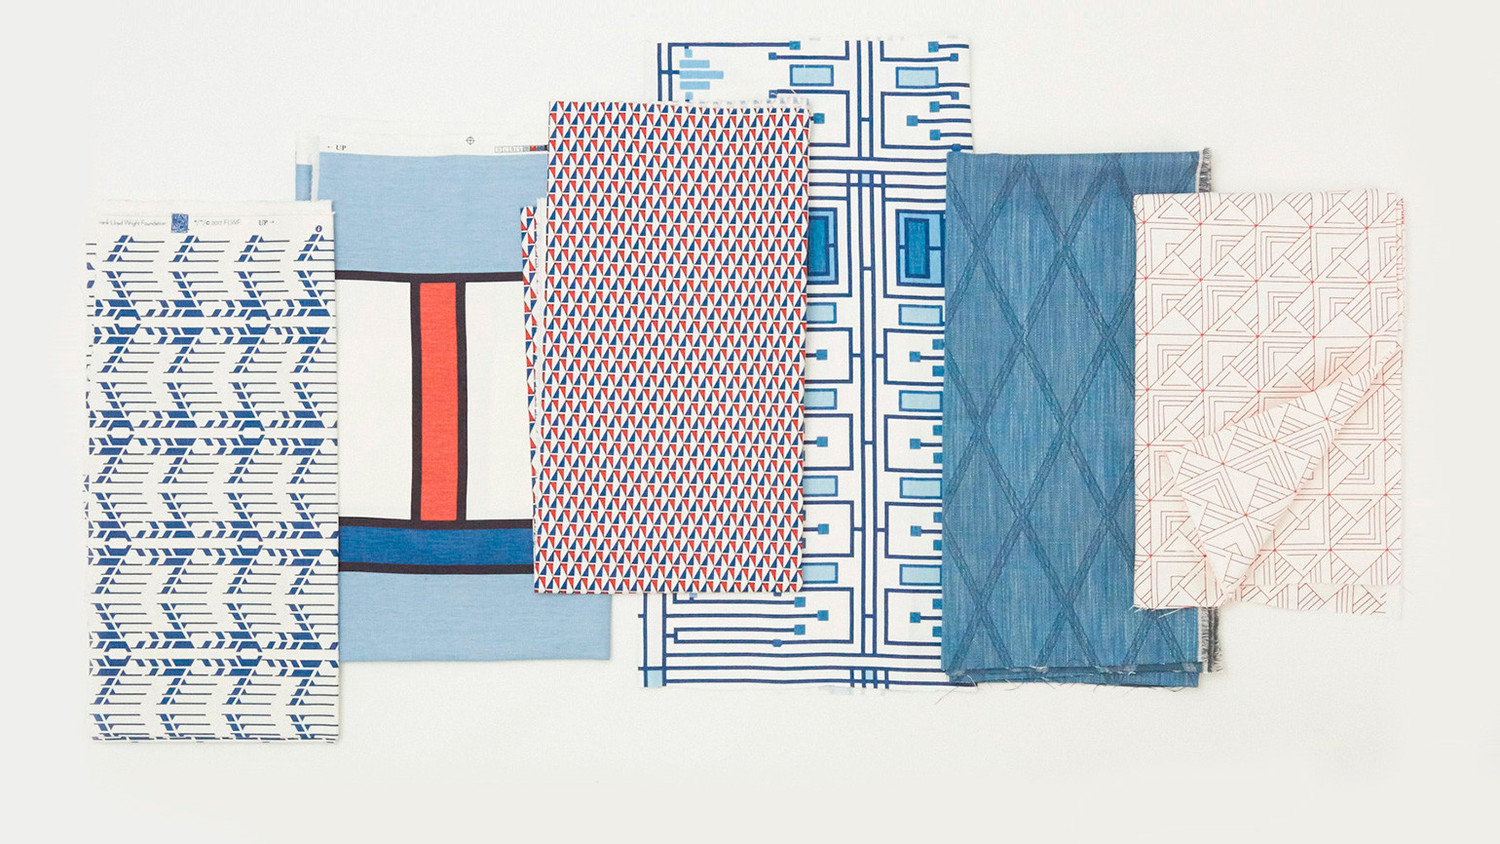 Frank Lloyd Wrights Original Fabric Designs from the 50s